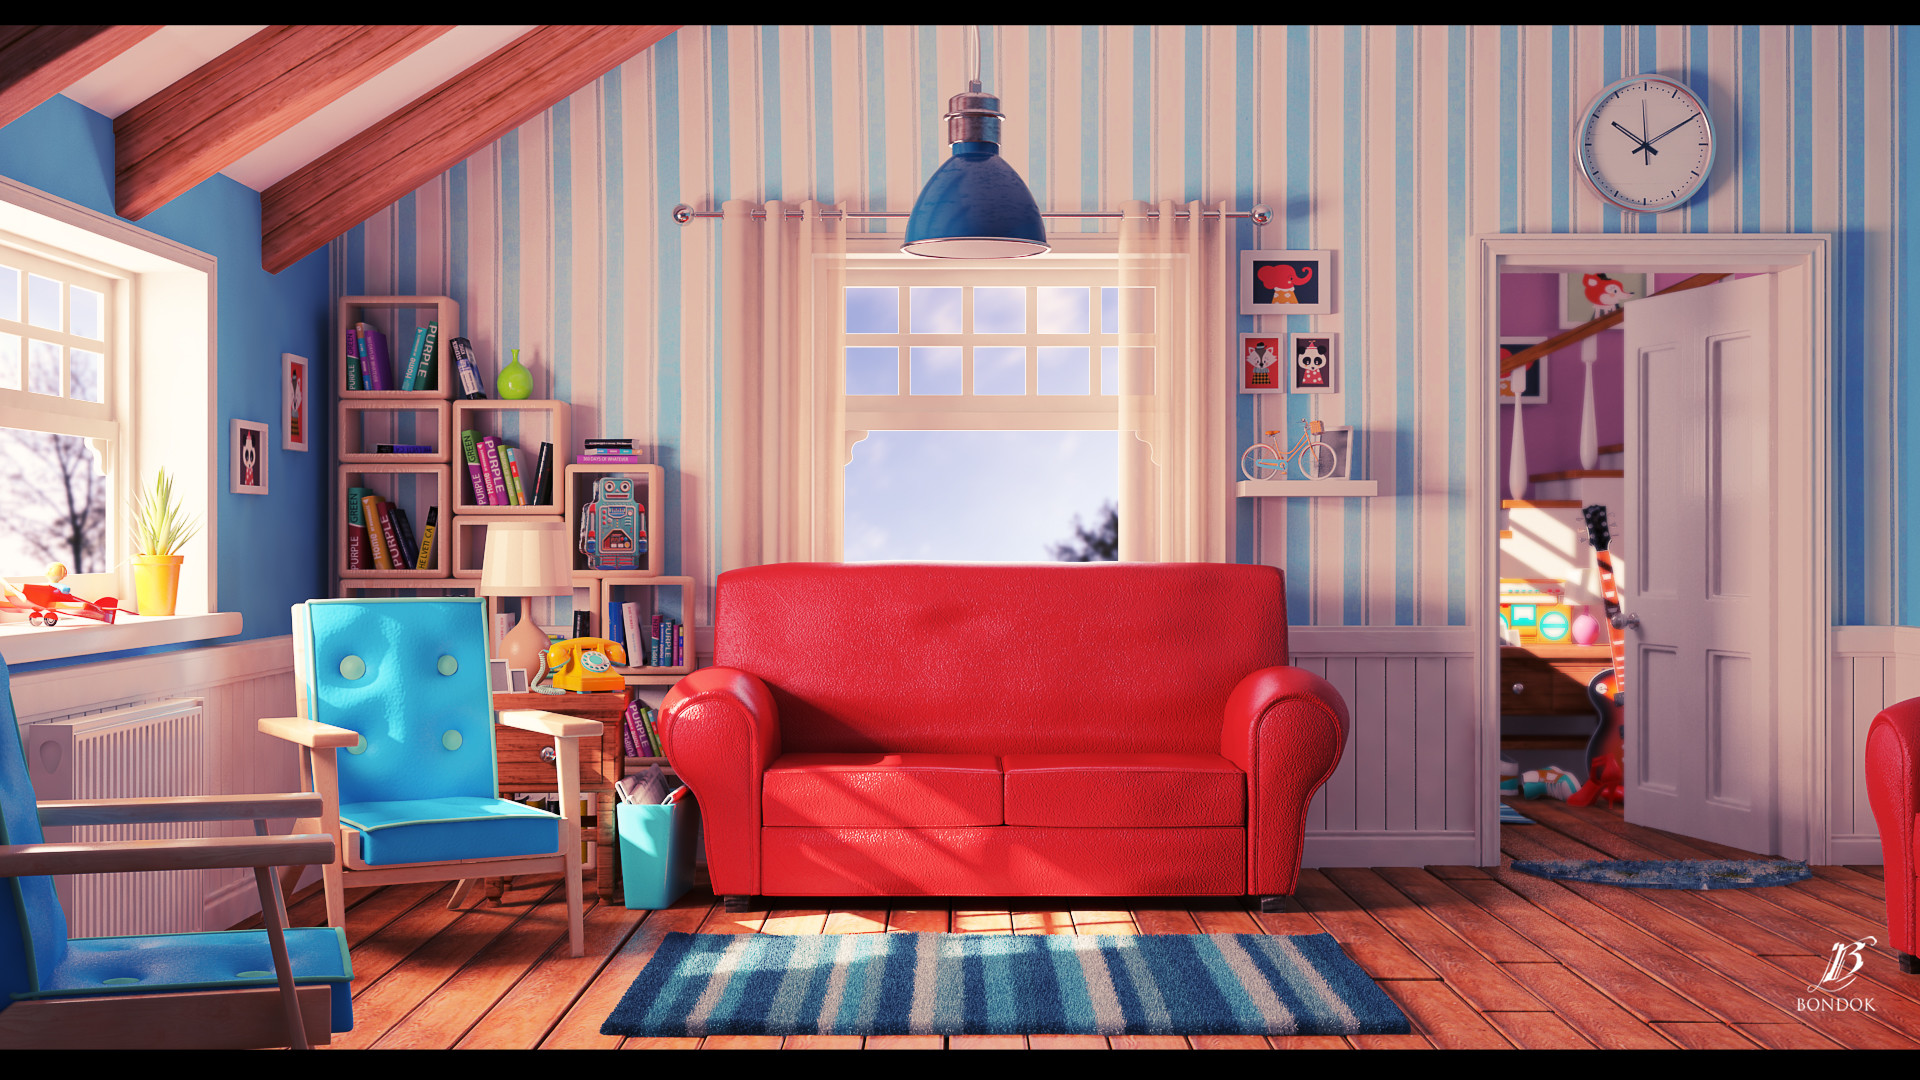 Artstation cartoon living room bondok max - Living room picture ...